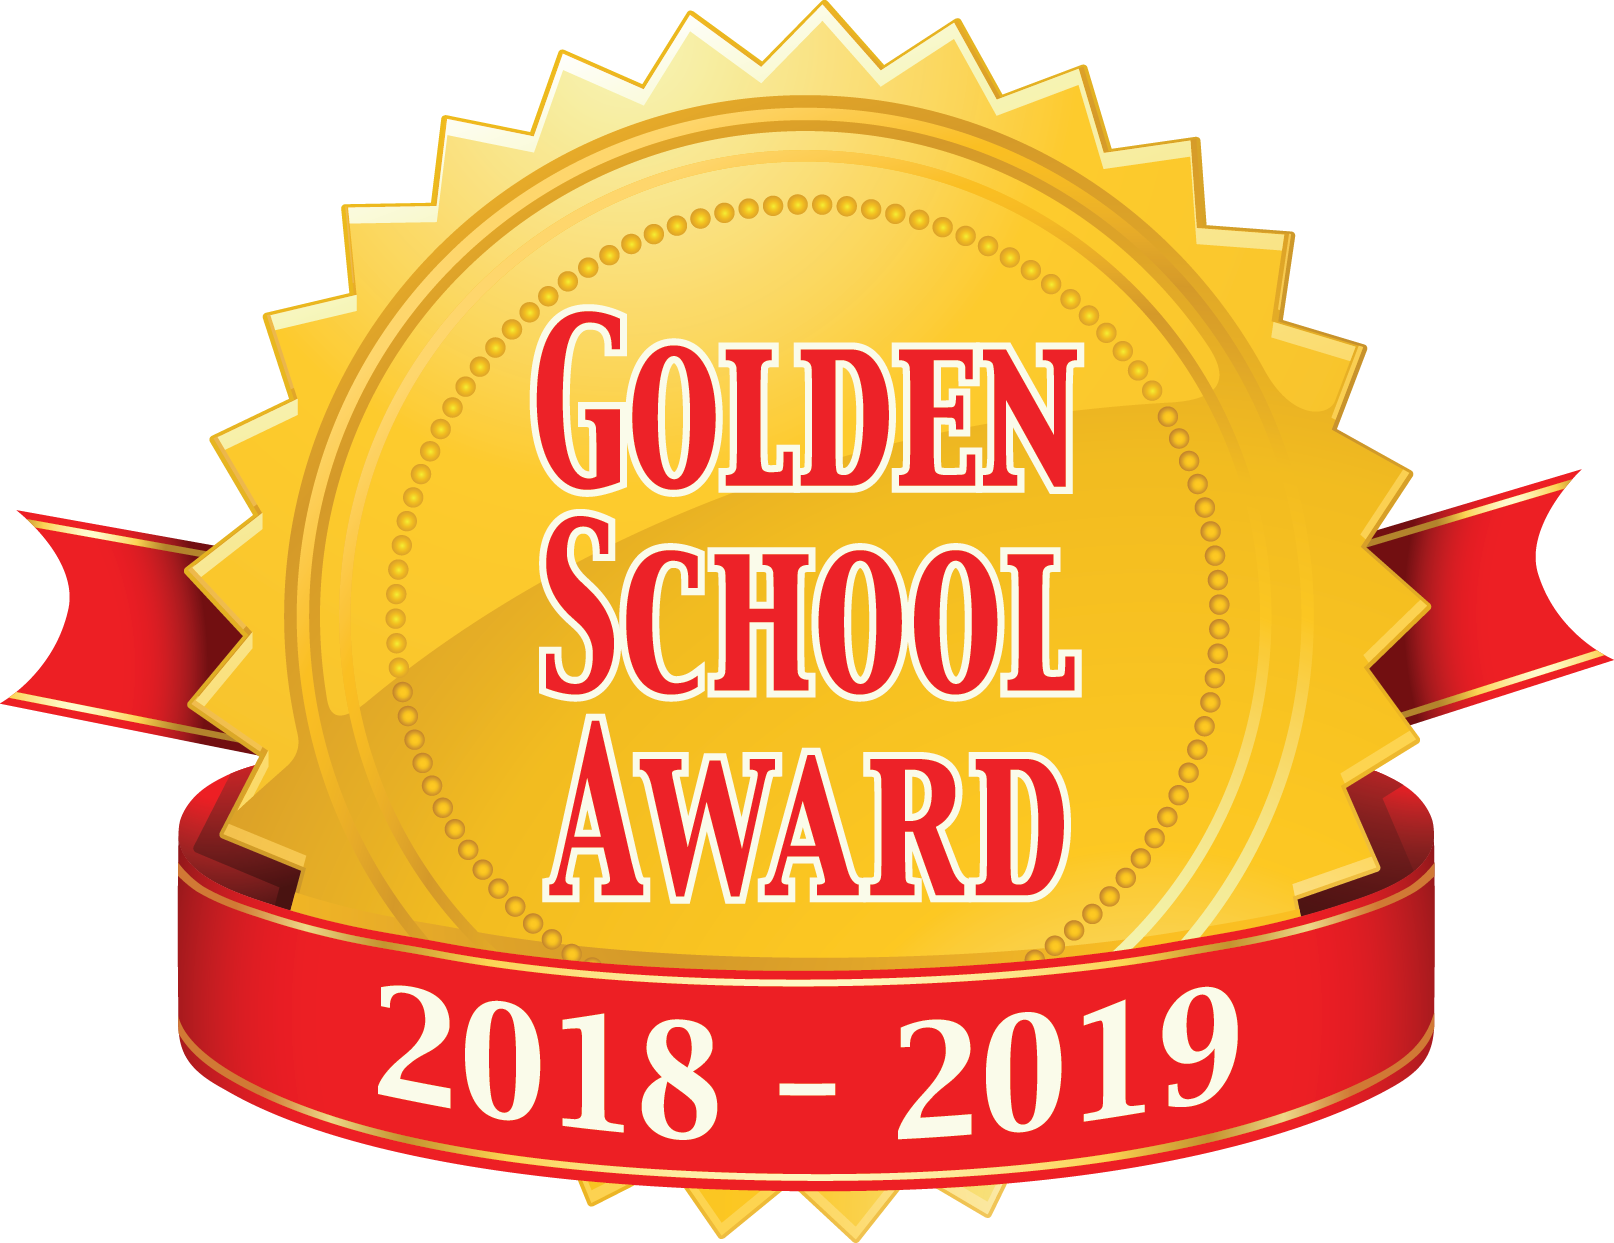 Golden School Award18-19[1]